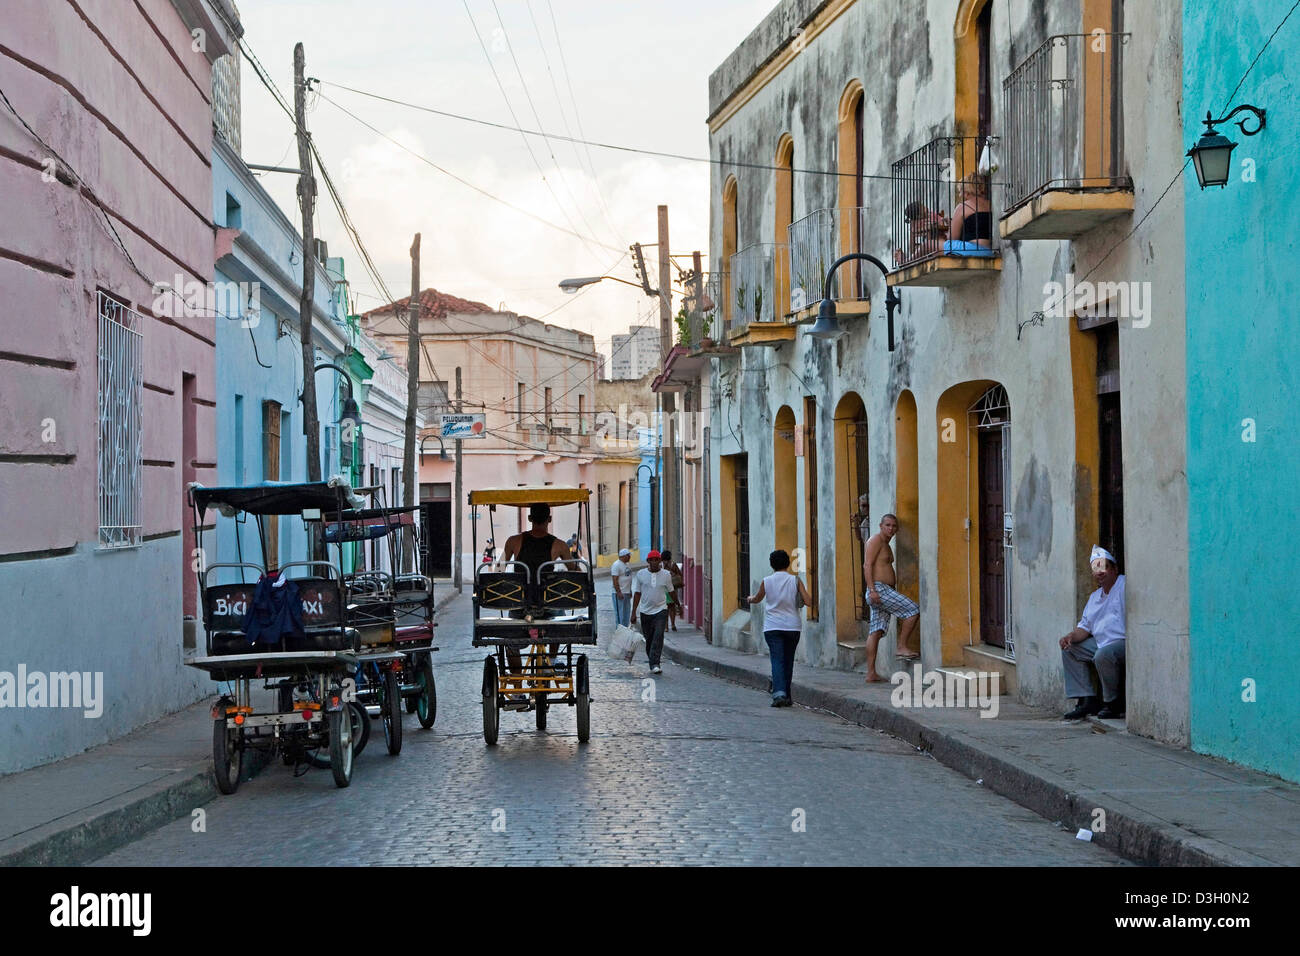 Street scene showing three-wheeled bicycle taxis in the city Camagüey, Cuba, Caribbean - Stock Image